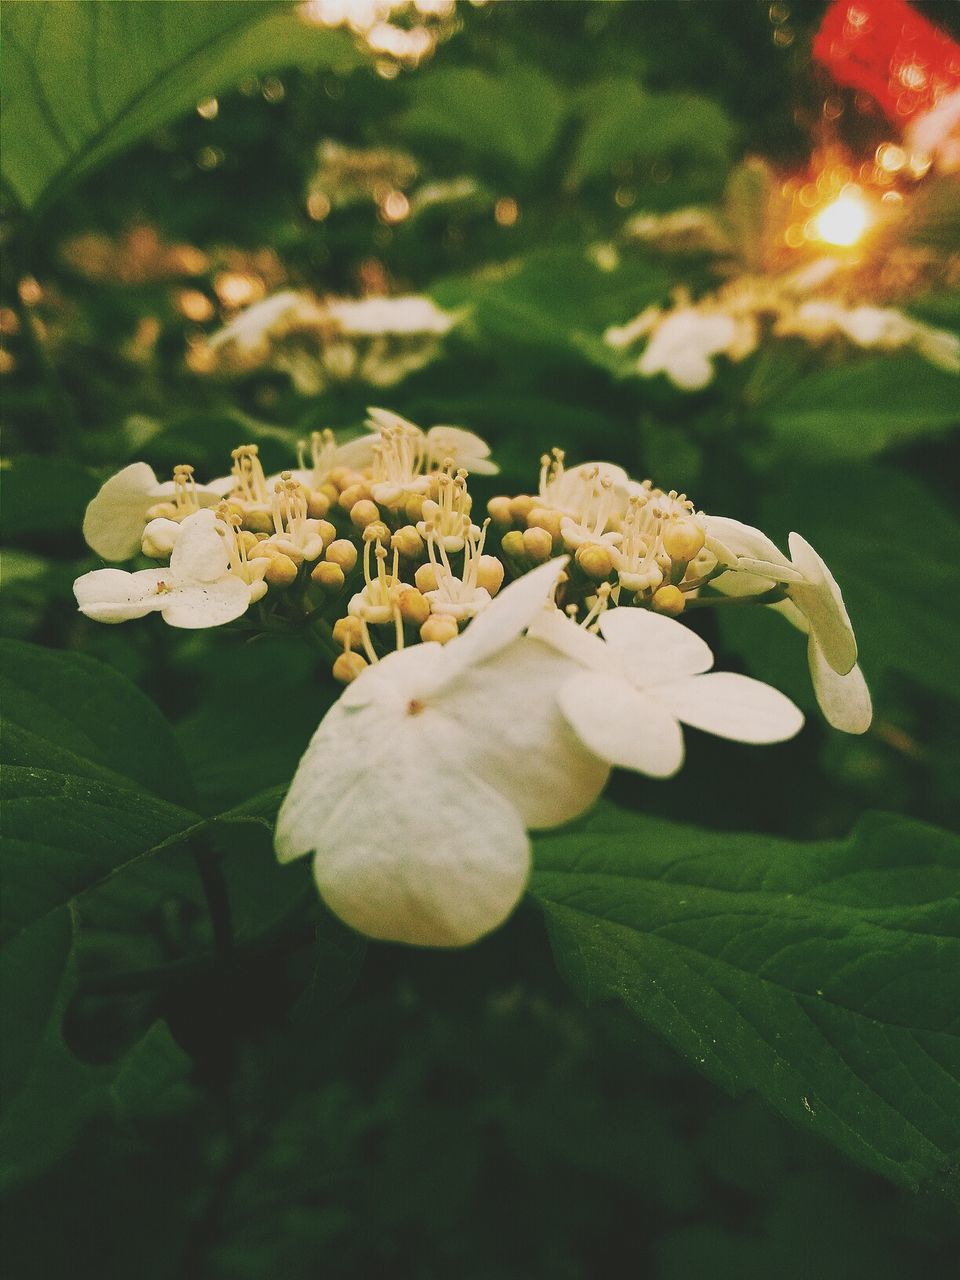 flower, petal, beauty in nature, freshness, fragility, nature, plant, growth, no people, flower head, close-up, leaf, outdoors, blooming, day